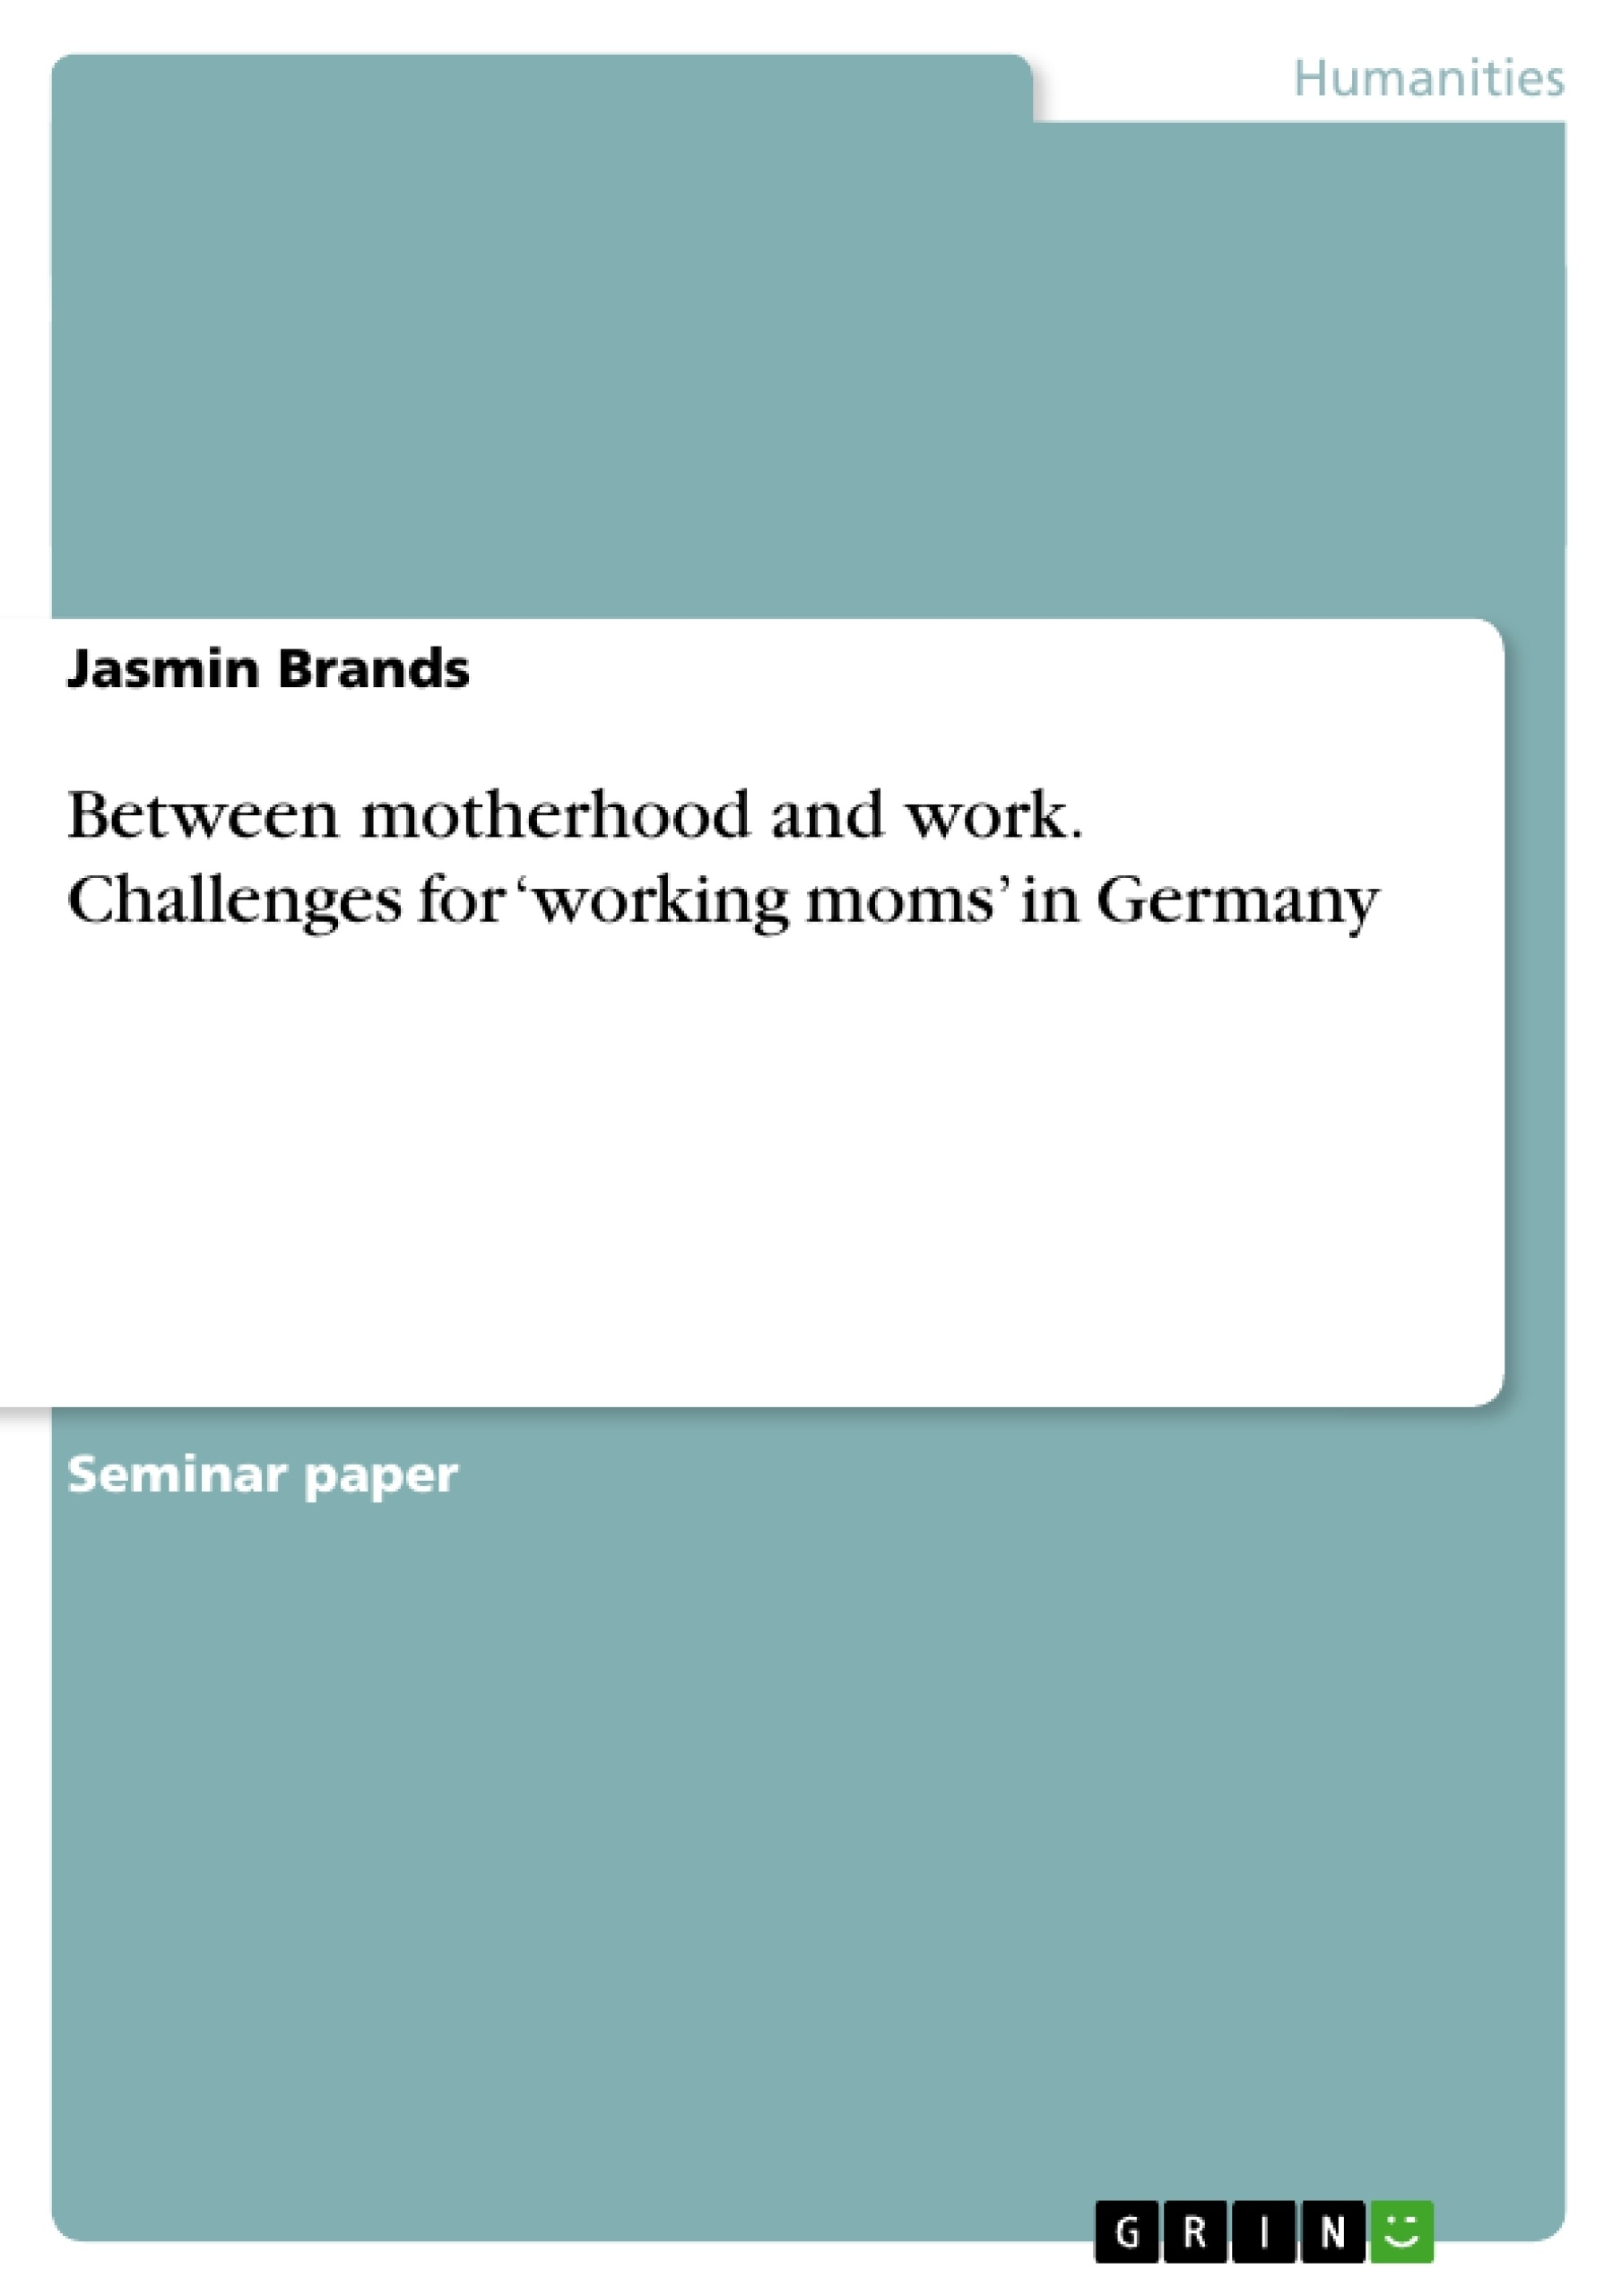 Title: Between motherhood and work. Challenges for 'working moms' in Germany